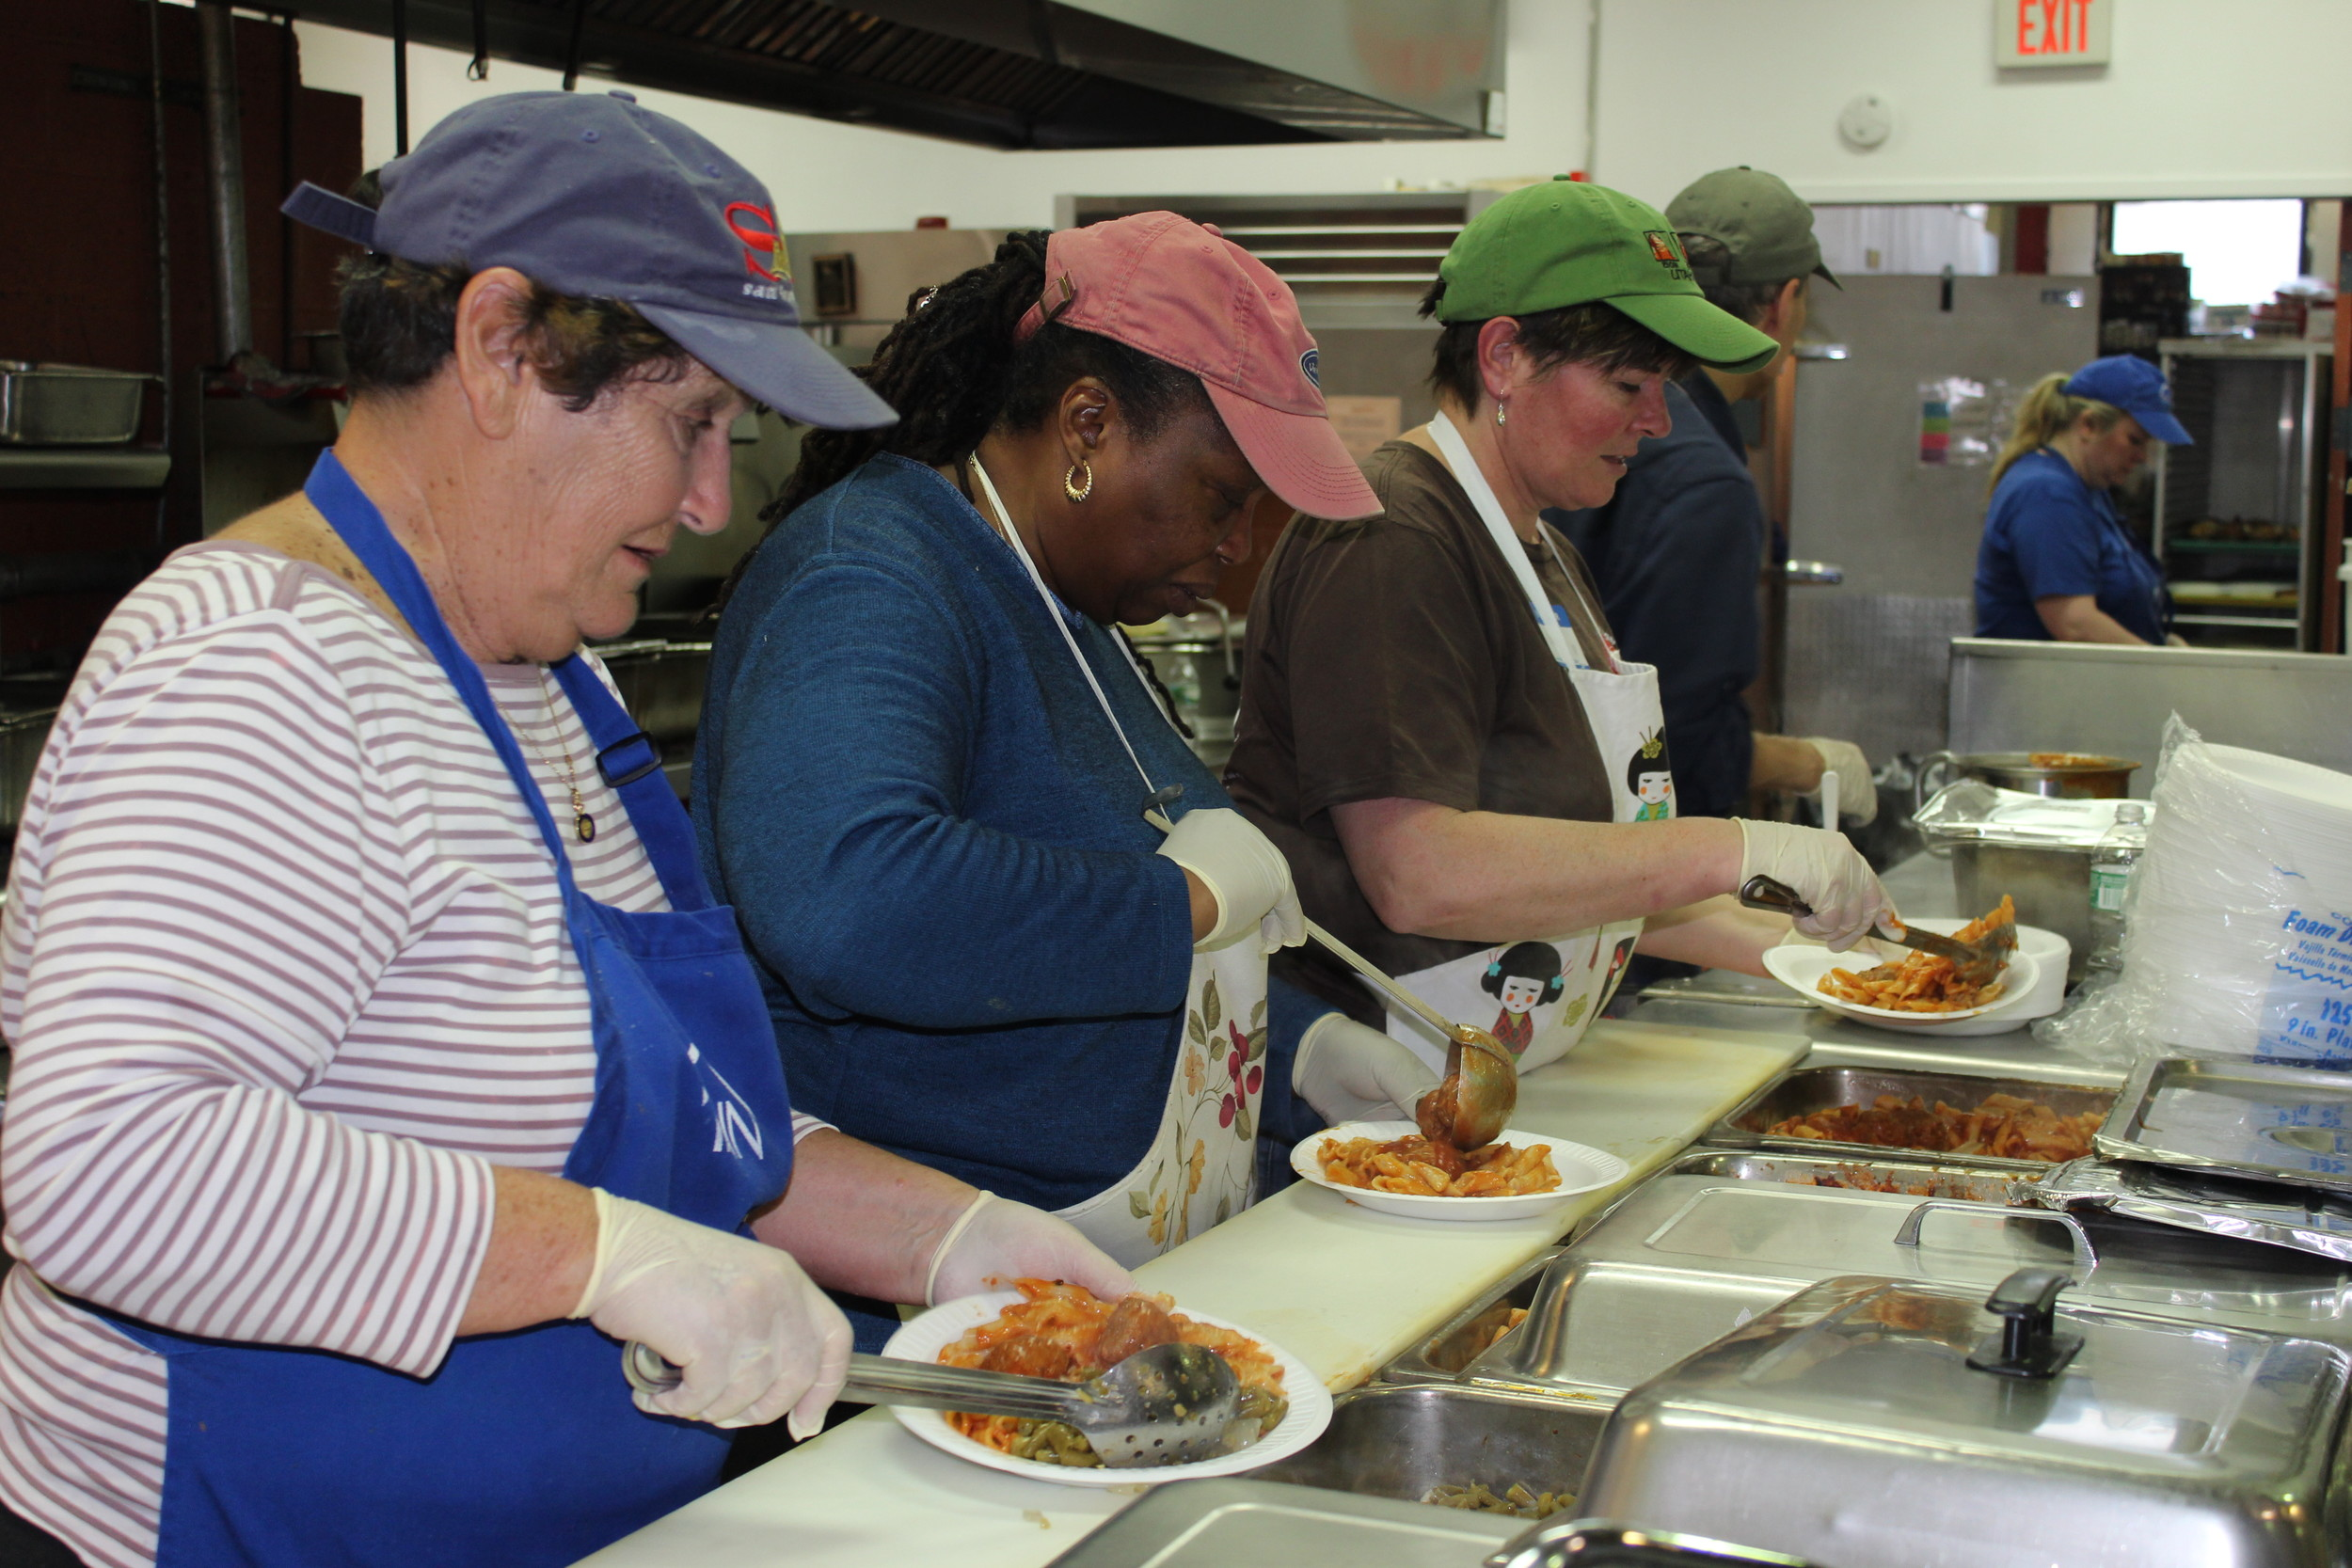 Volunteers at the INN's Mary Brennan Soup Kitchen, top, prepared meals for the homeless and hungry. The soup kitchen serves 300 people each weekday.